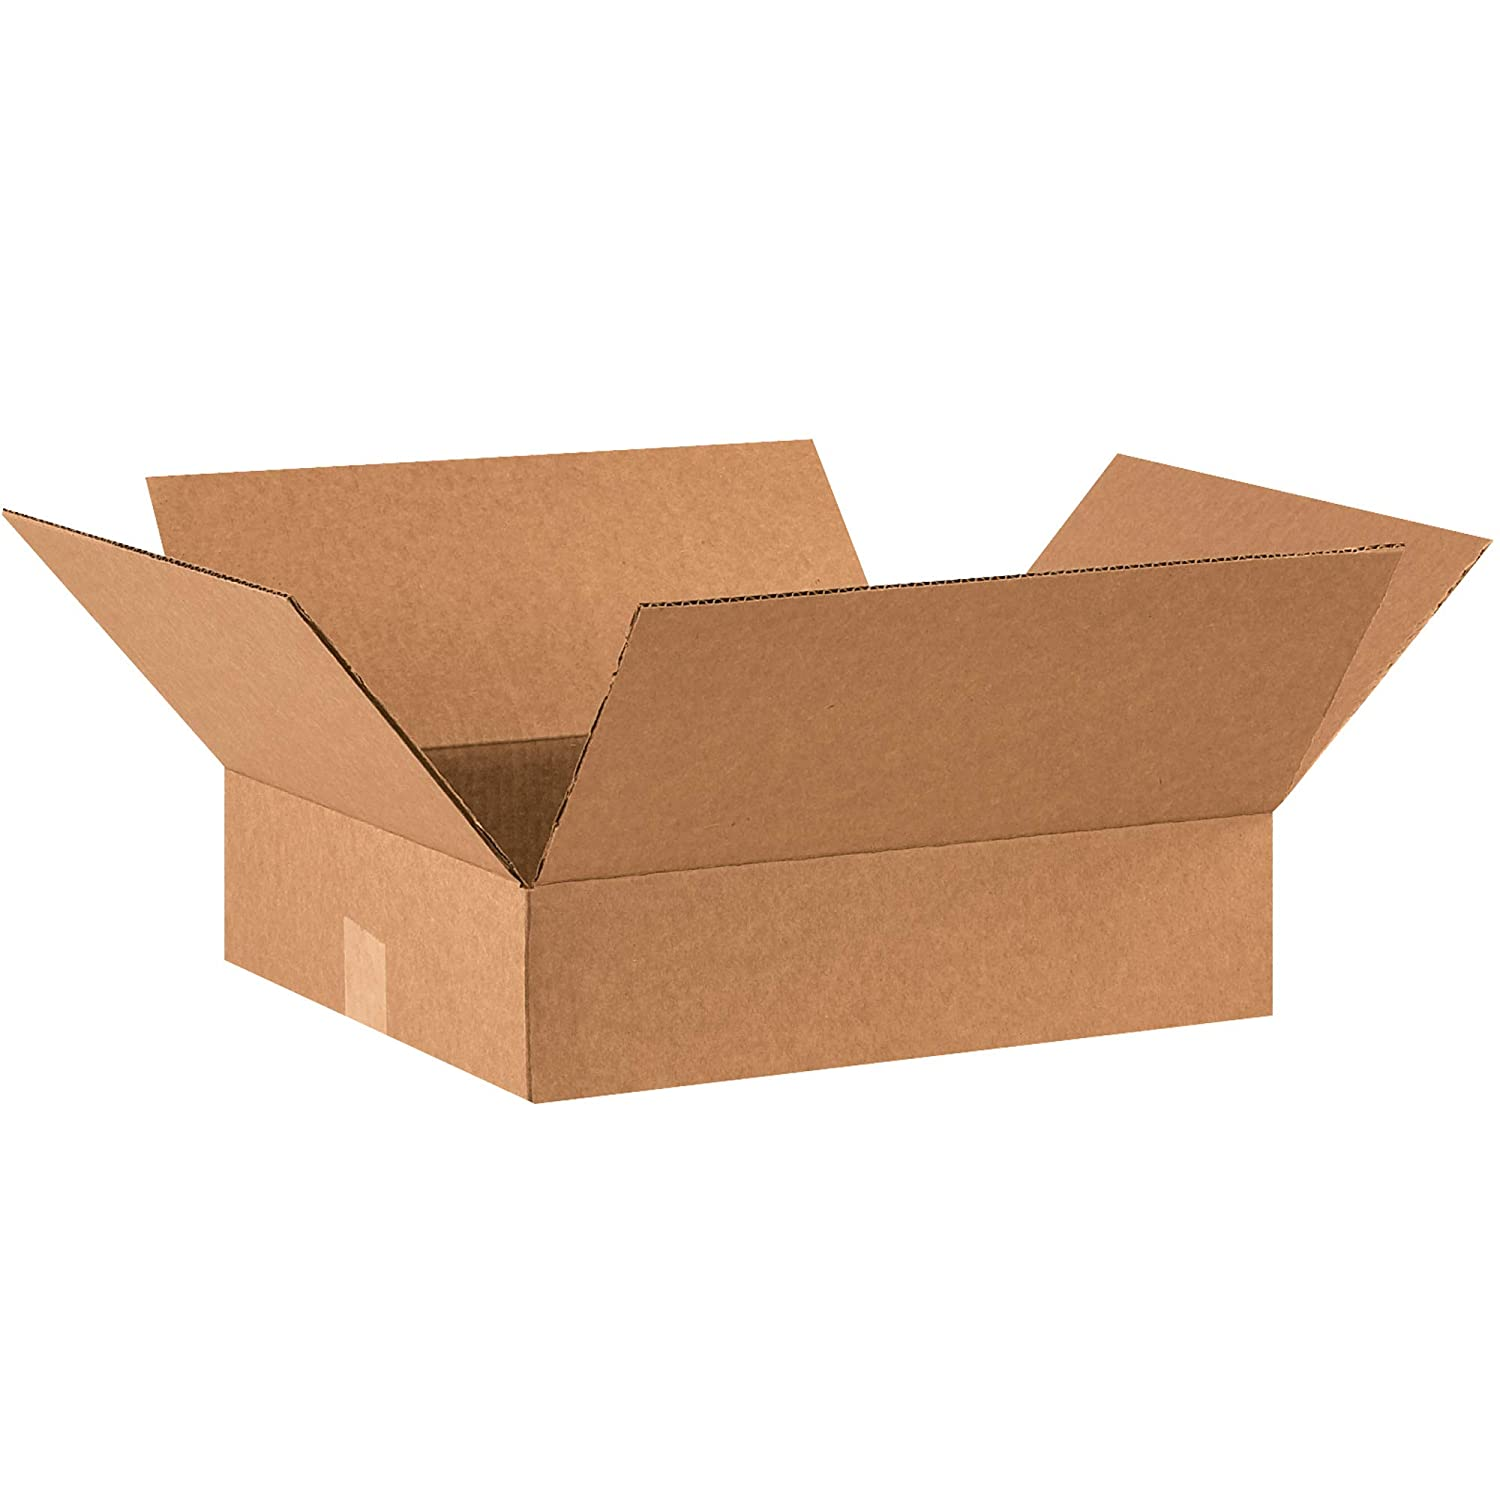 Flat Corrugated Boxes Max 74% OFF 16